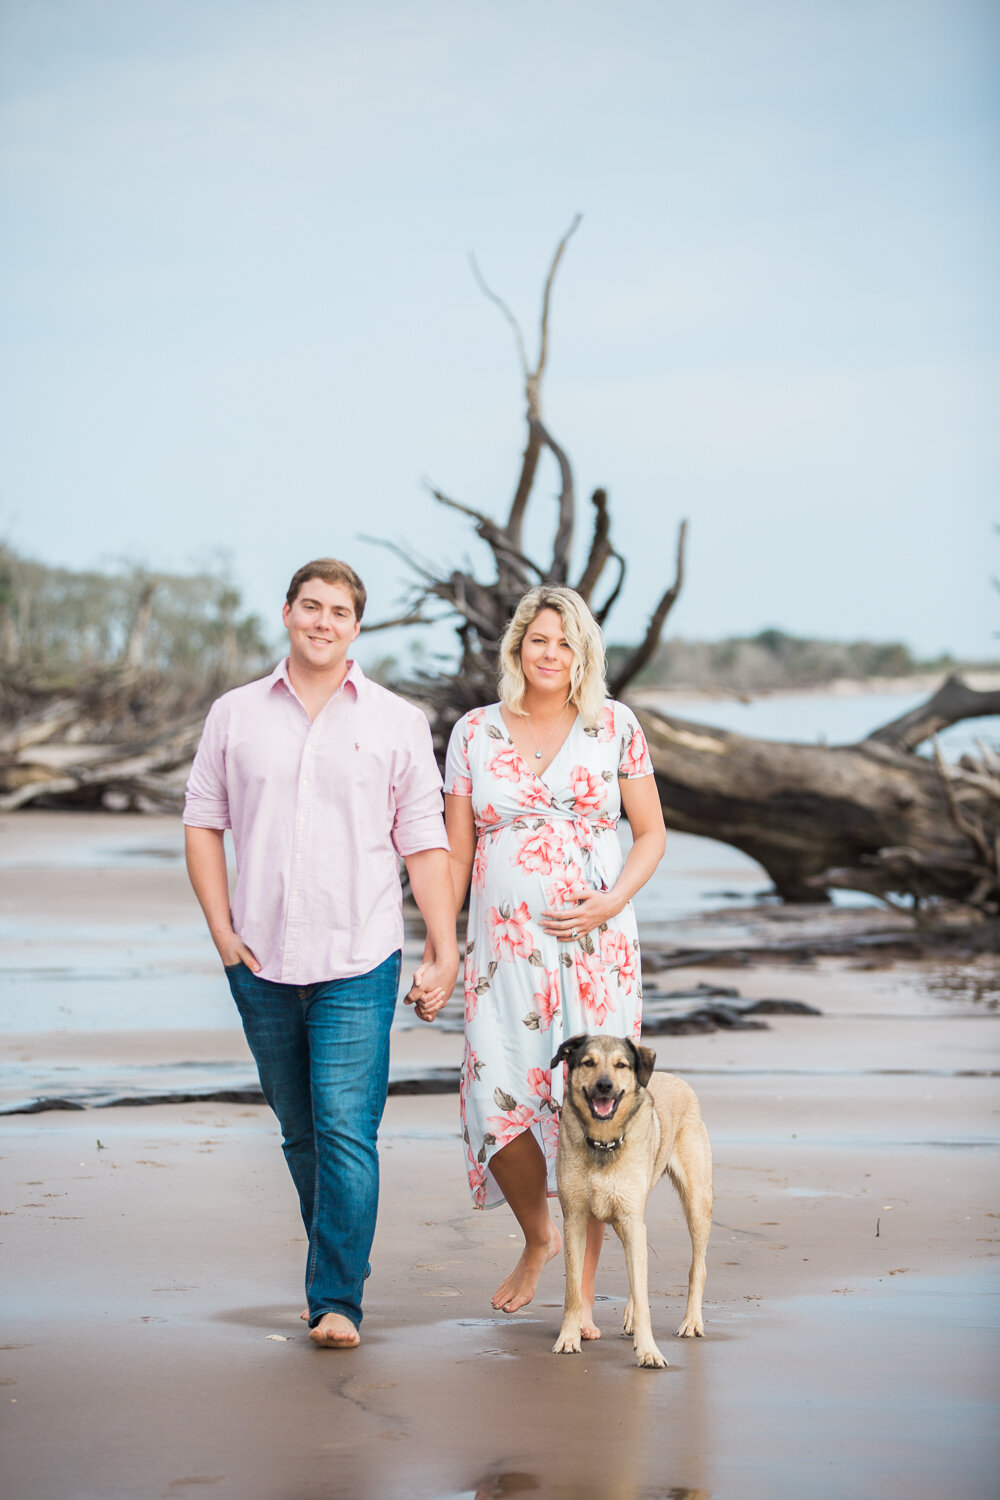 couple walking at the beach with a dog during maternity photoshoot